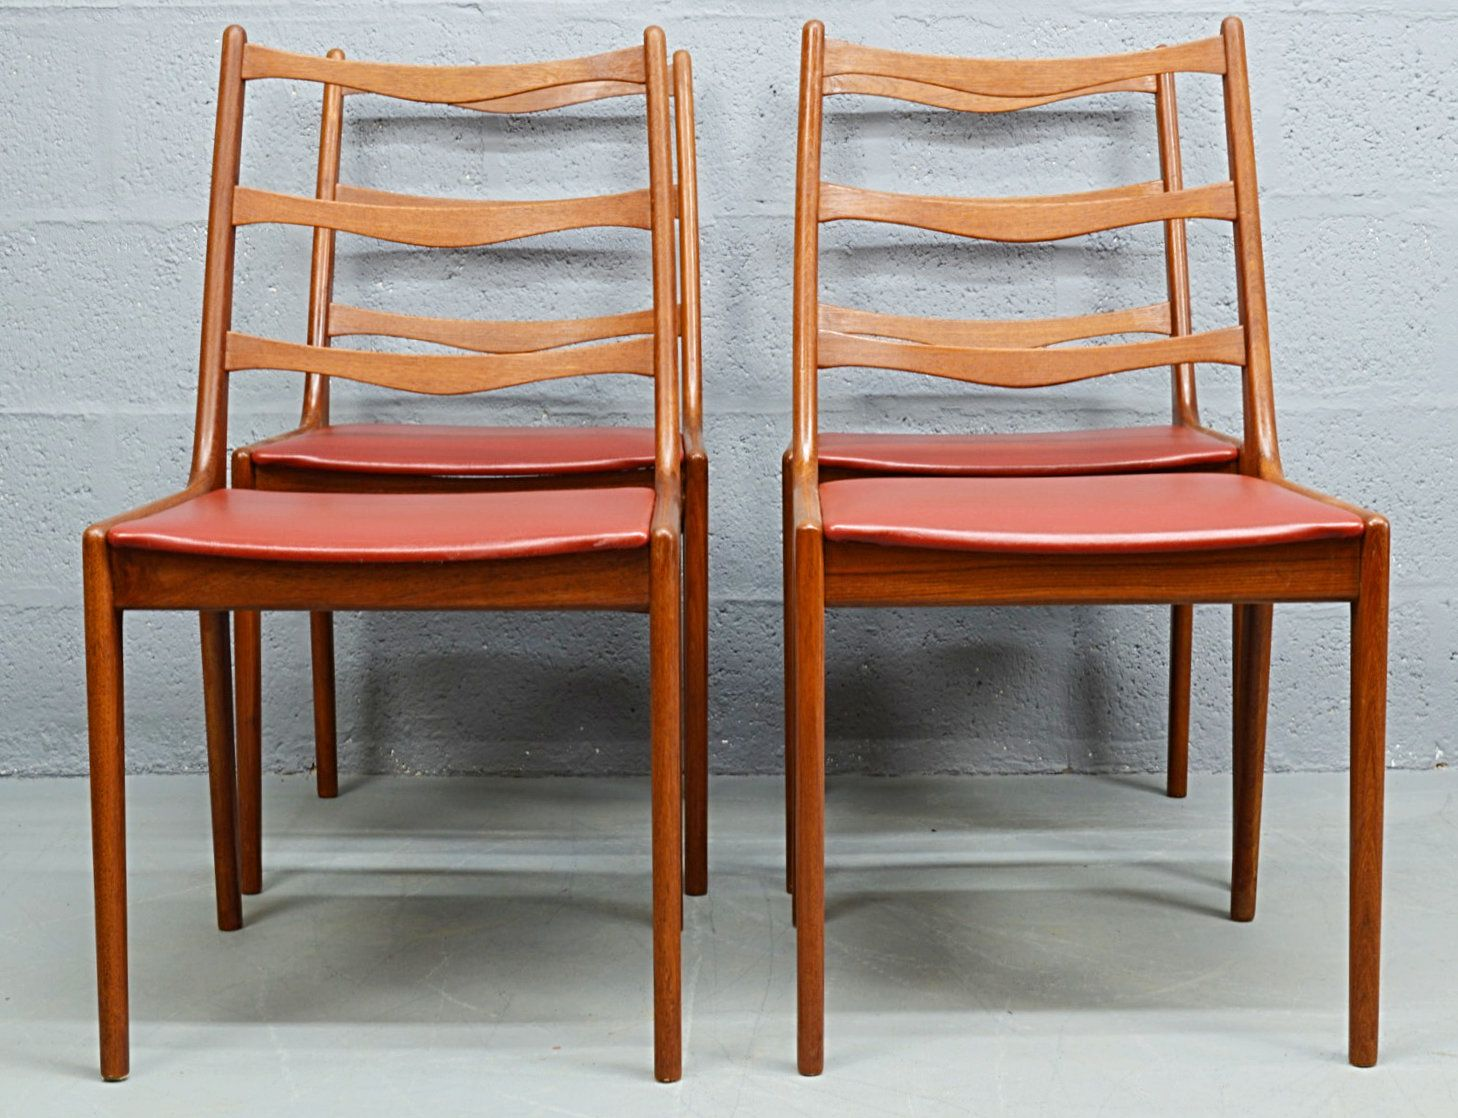 Danish Furniture St Louis Mid Century Teak Danish Dining Chairs By Kai Kristiansen